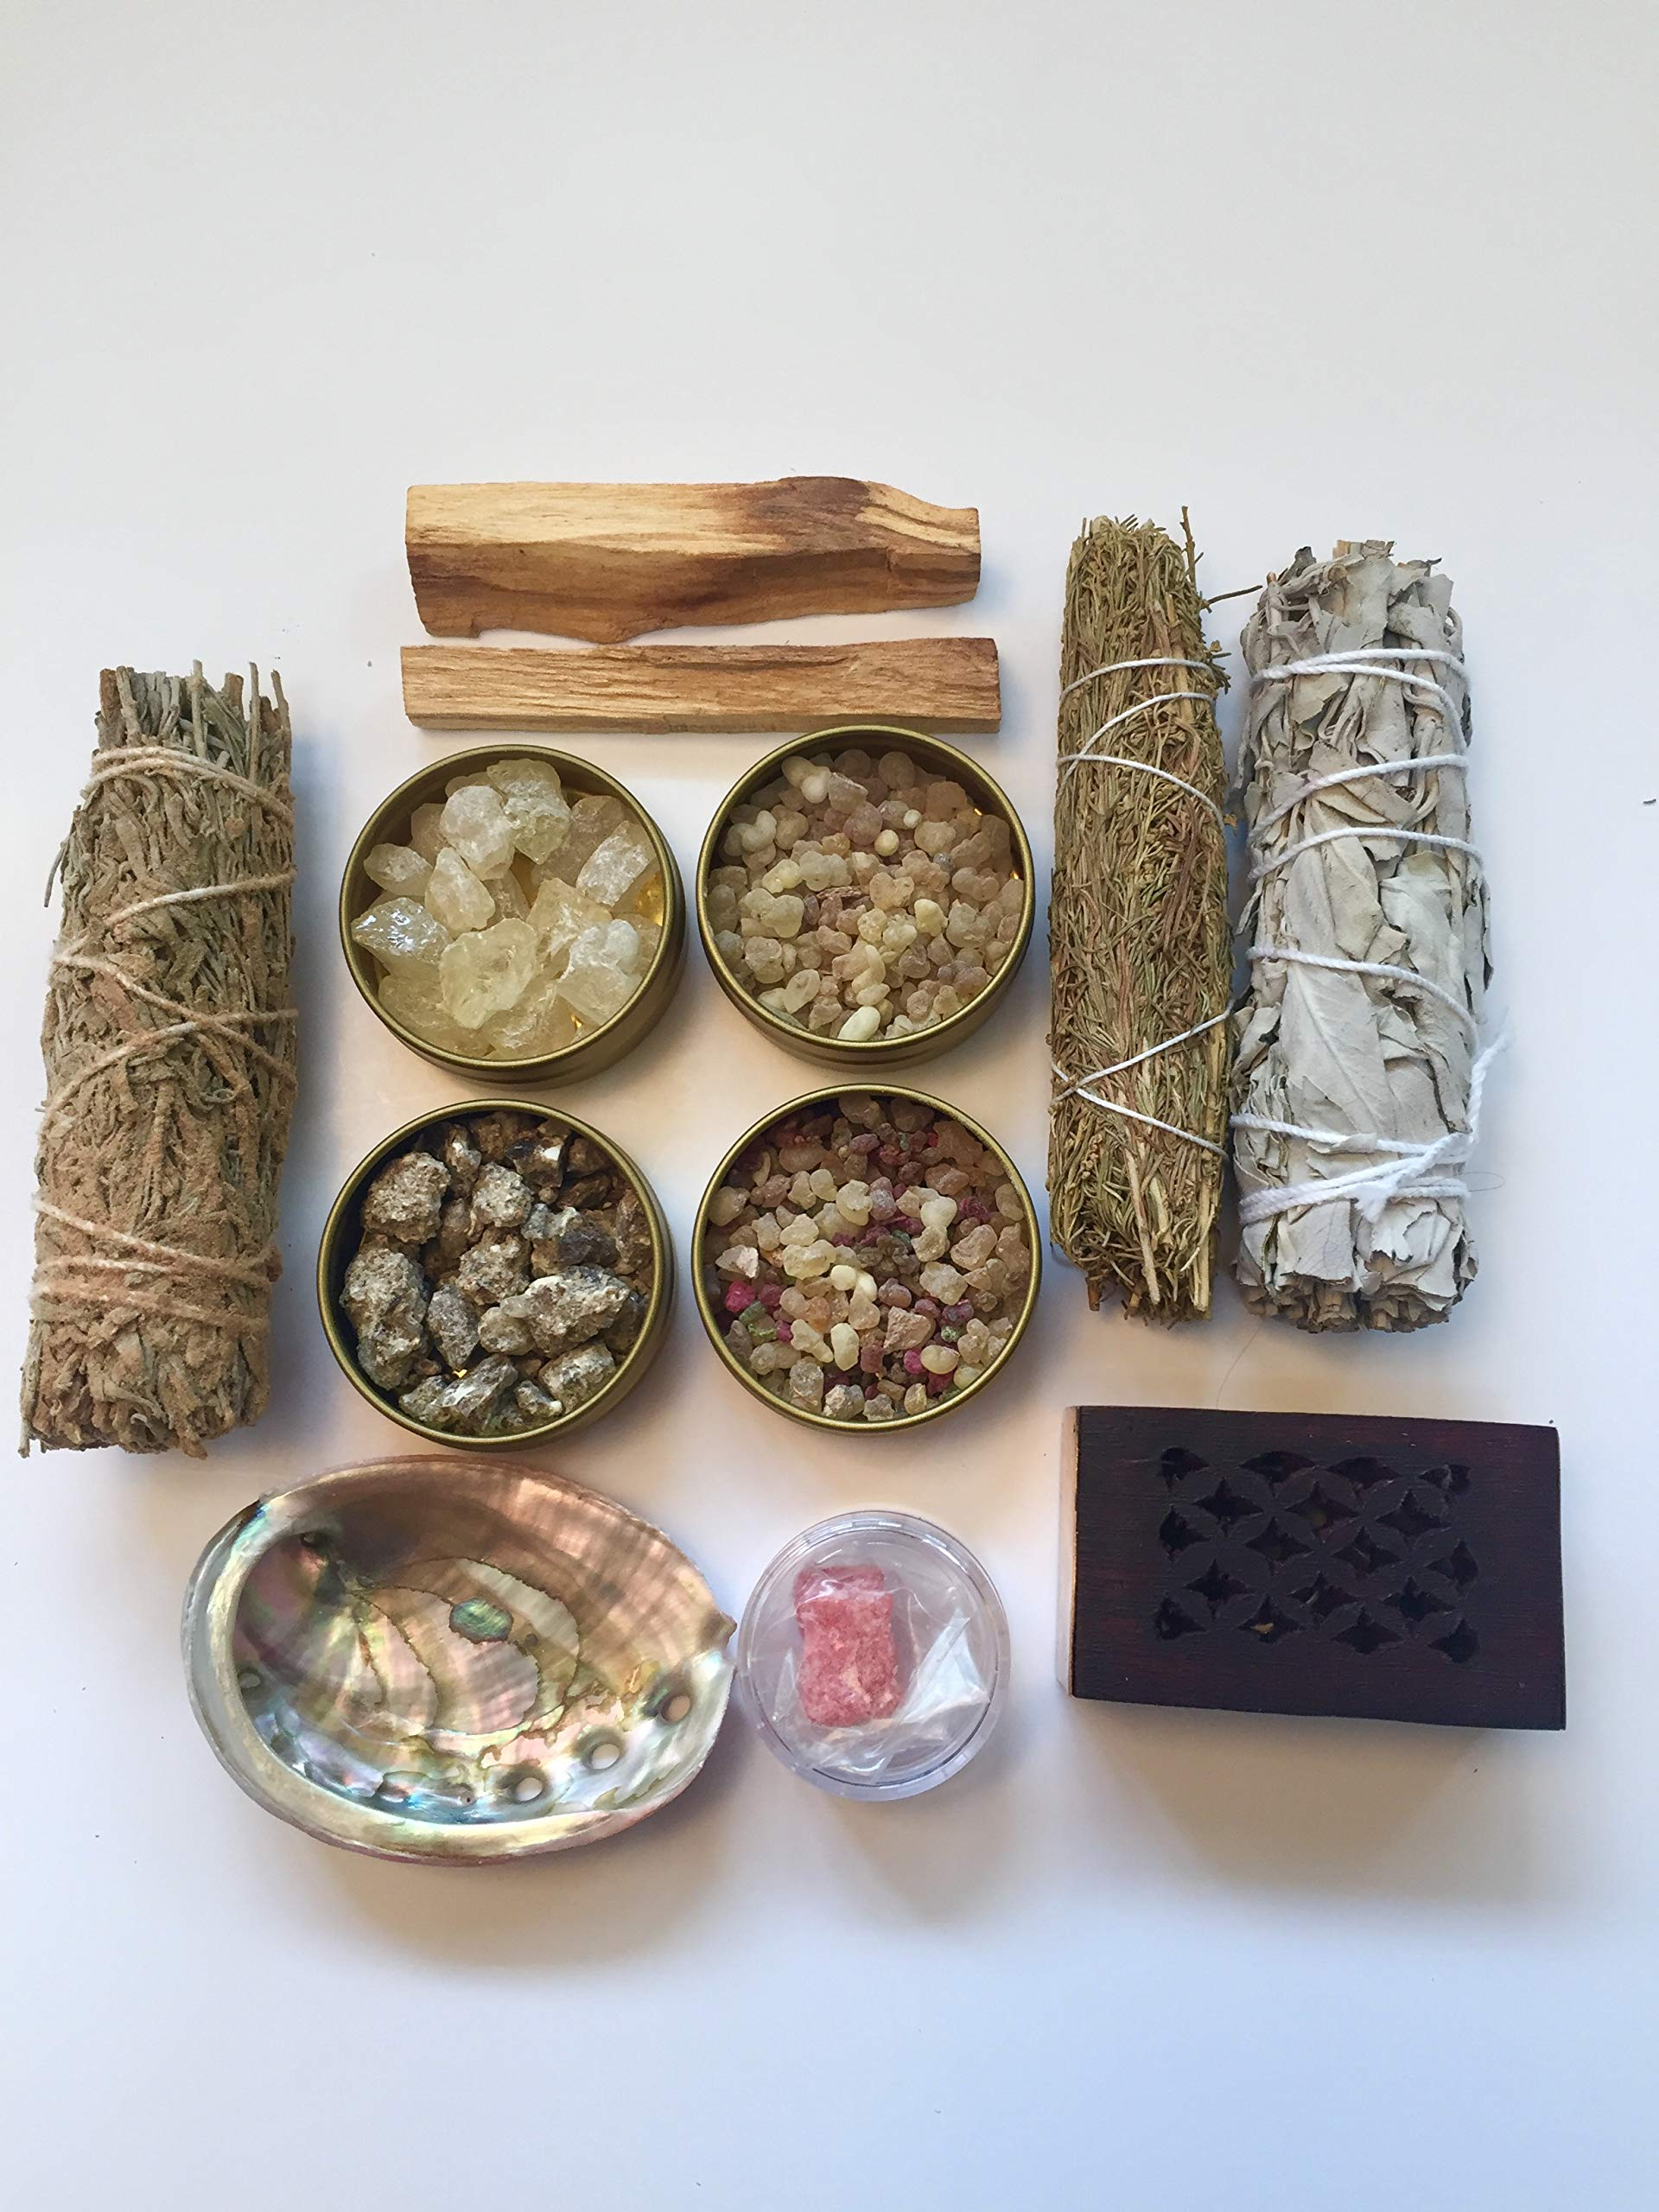 Resin Incense and Sage Smudges Variety Gift Kit includes, Amber Resin, Rose Resin, White Copal, Mystical Benzoin, Frankincense, White Sage Smudge, Desert Sage, Palo Santo Sticks and Abalone Shell by Sacred Scents For You (Image #6)